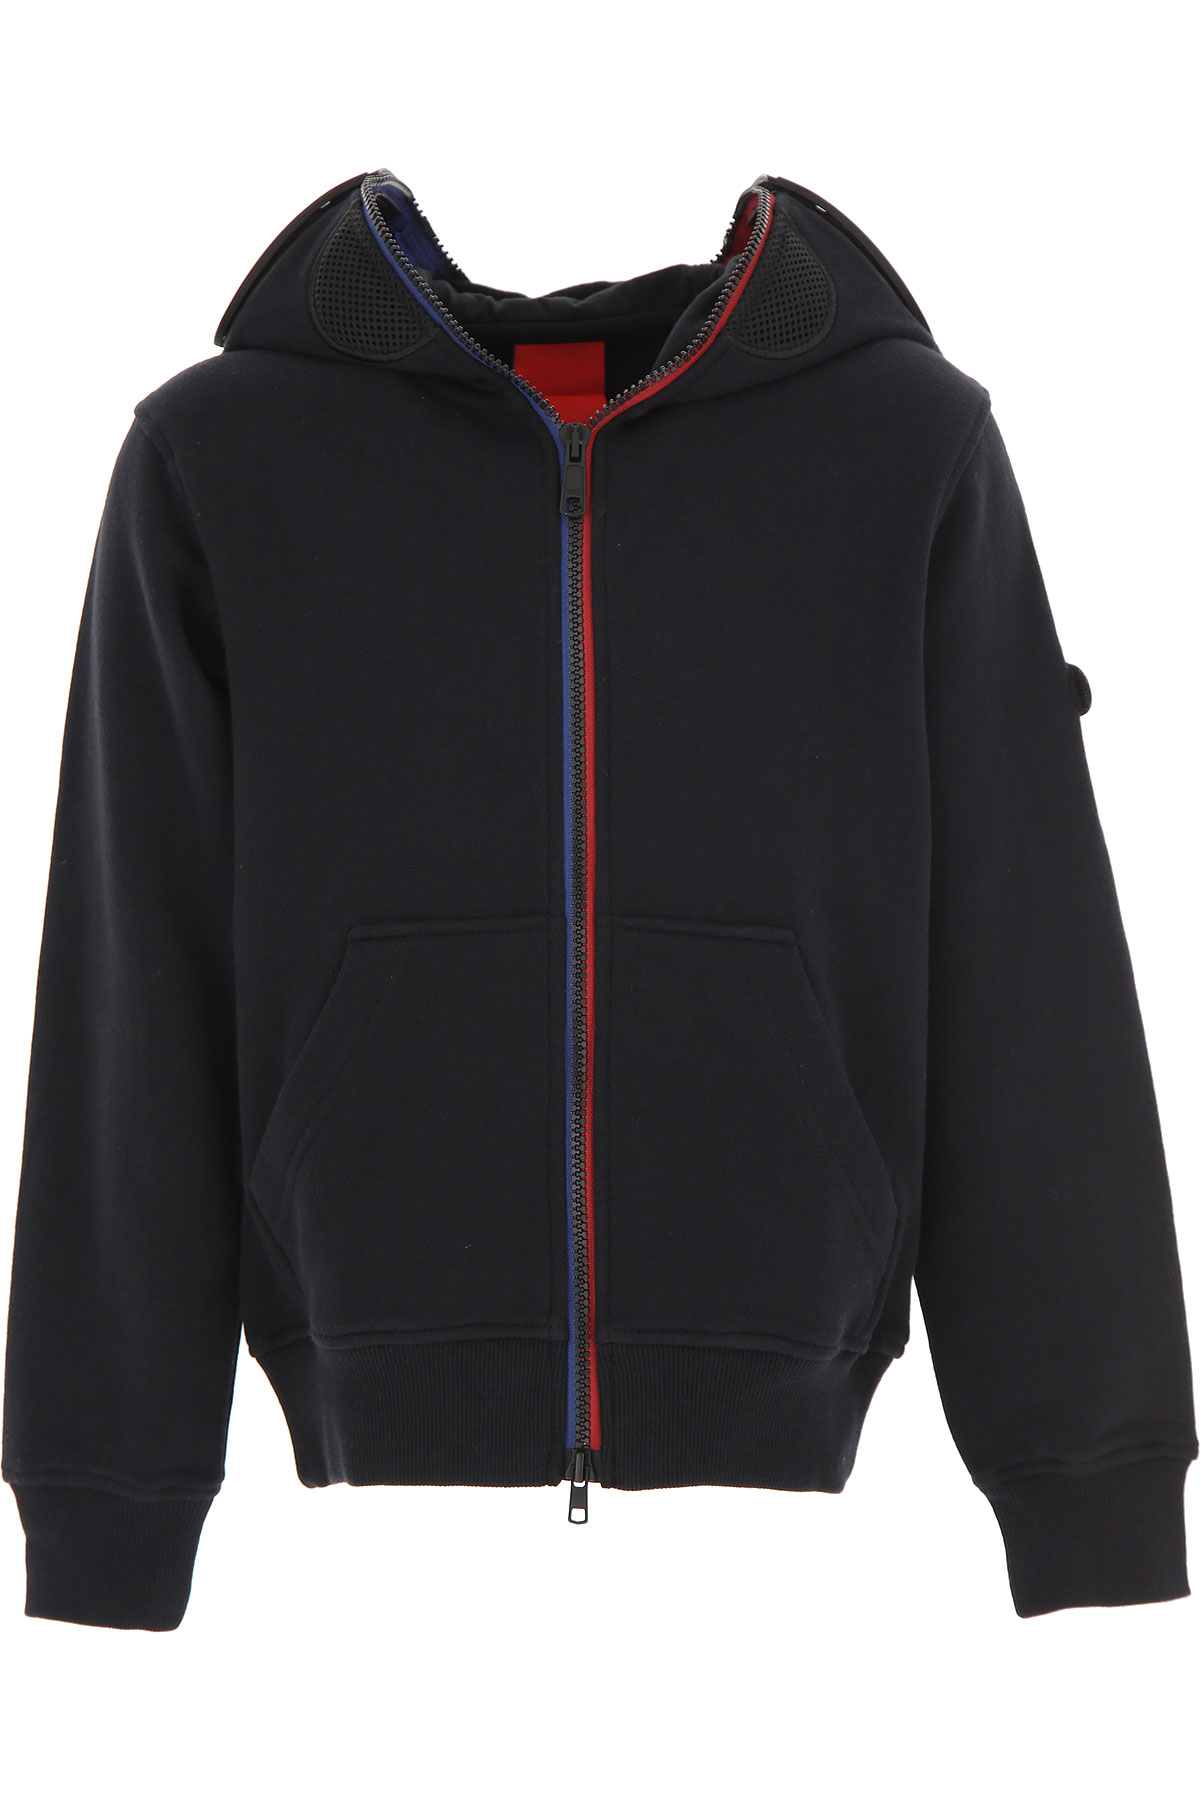 Image of Ai Riders On The Storm Kids Sweatshirts & Hoodies for Boys, Black, Cotton, 2017, 10Y 8Y